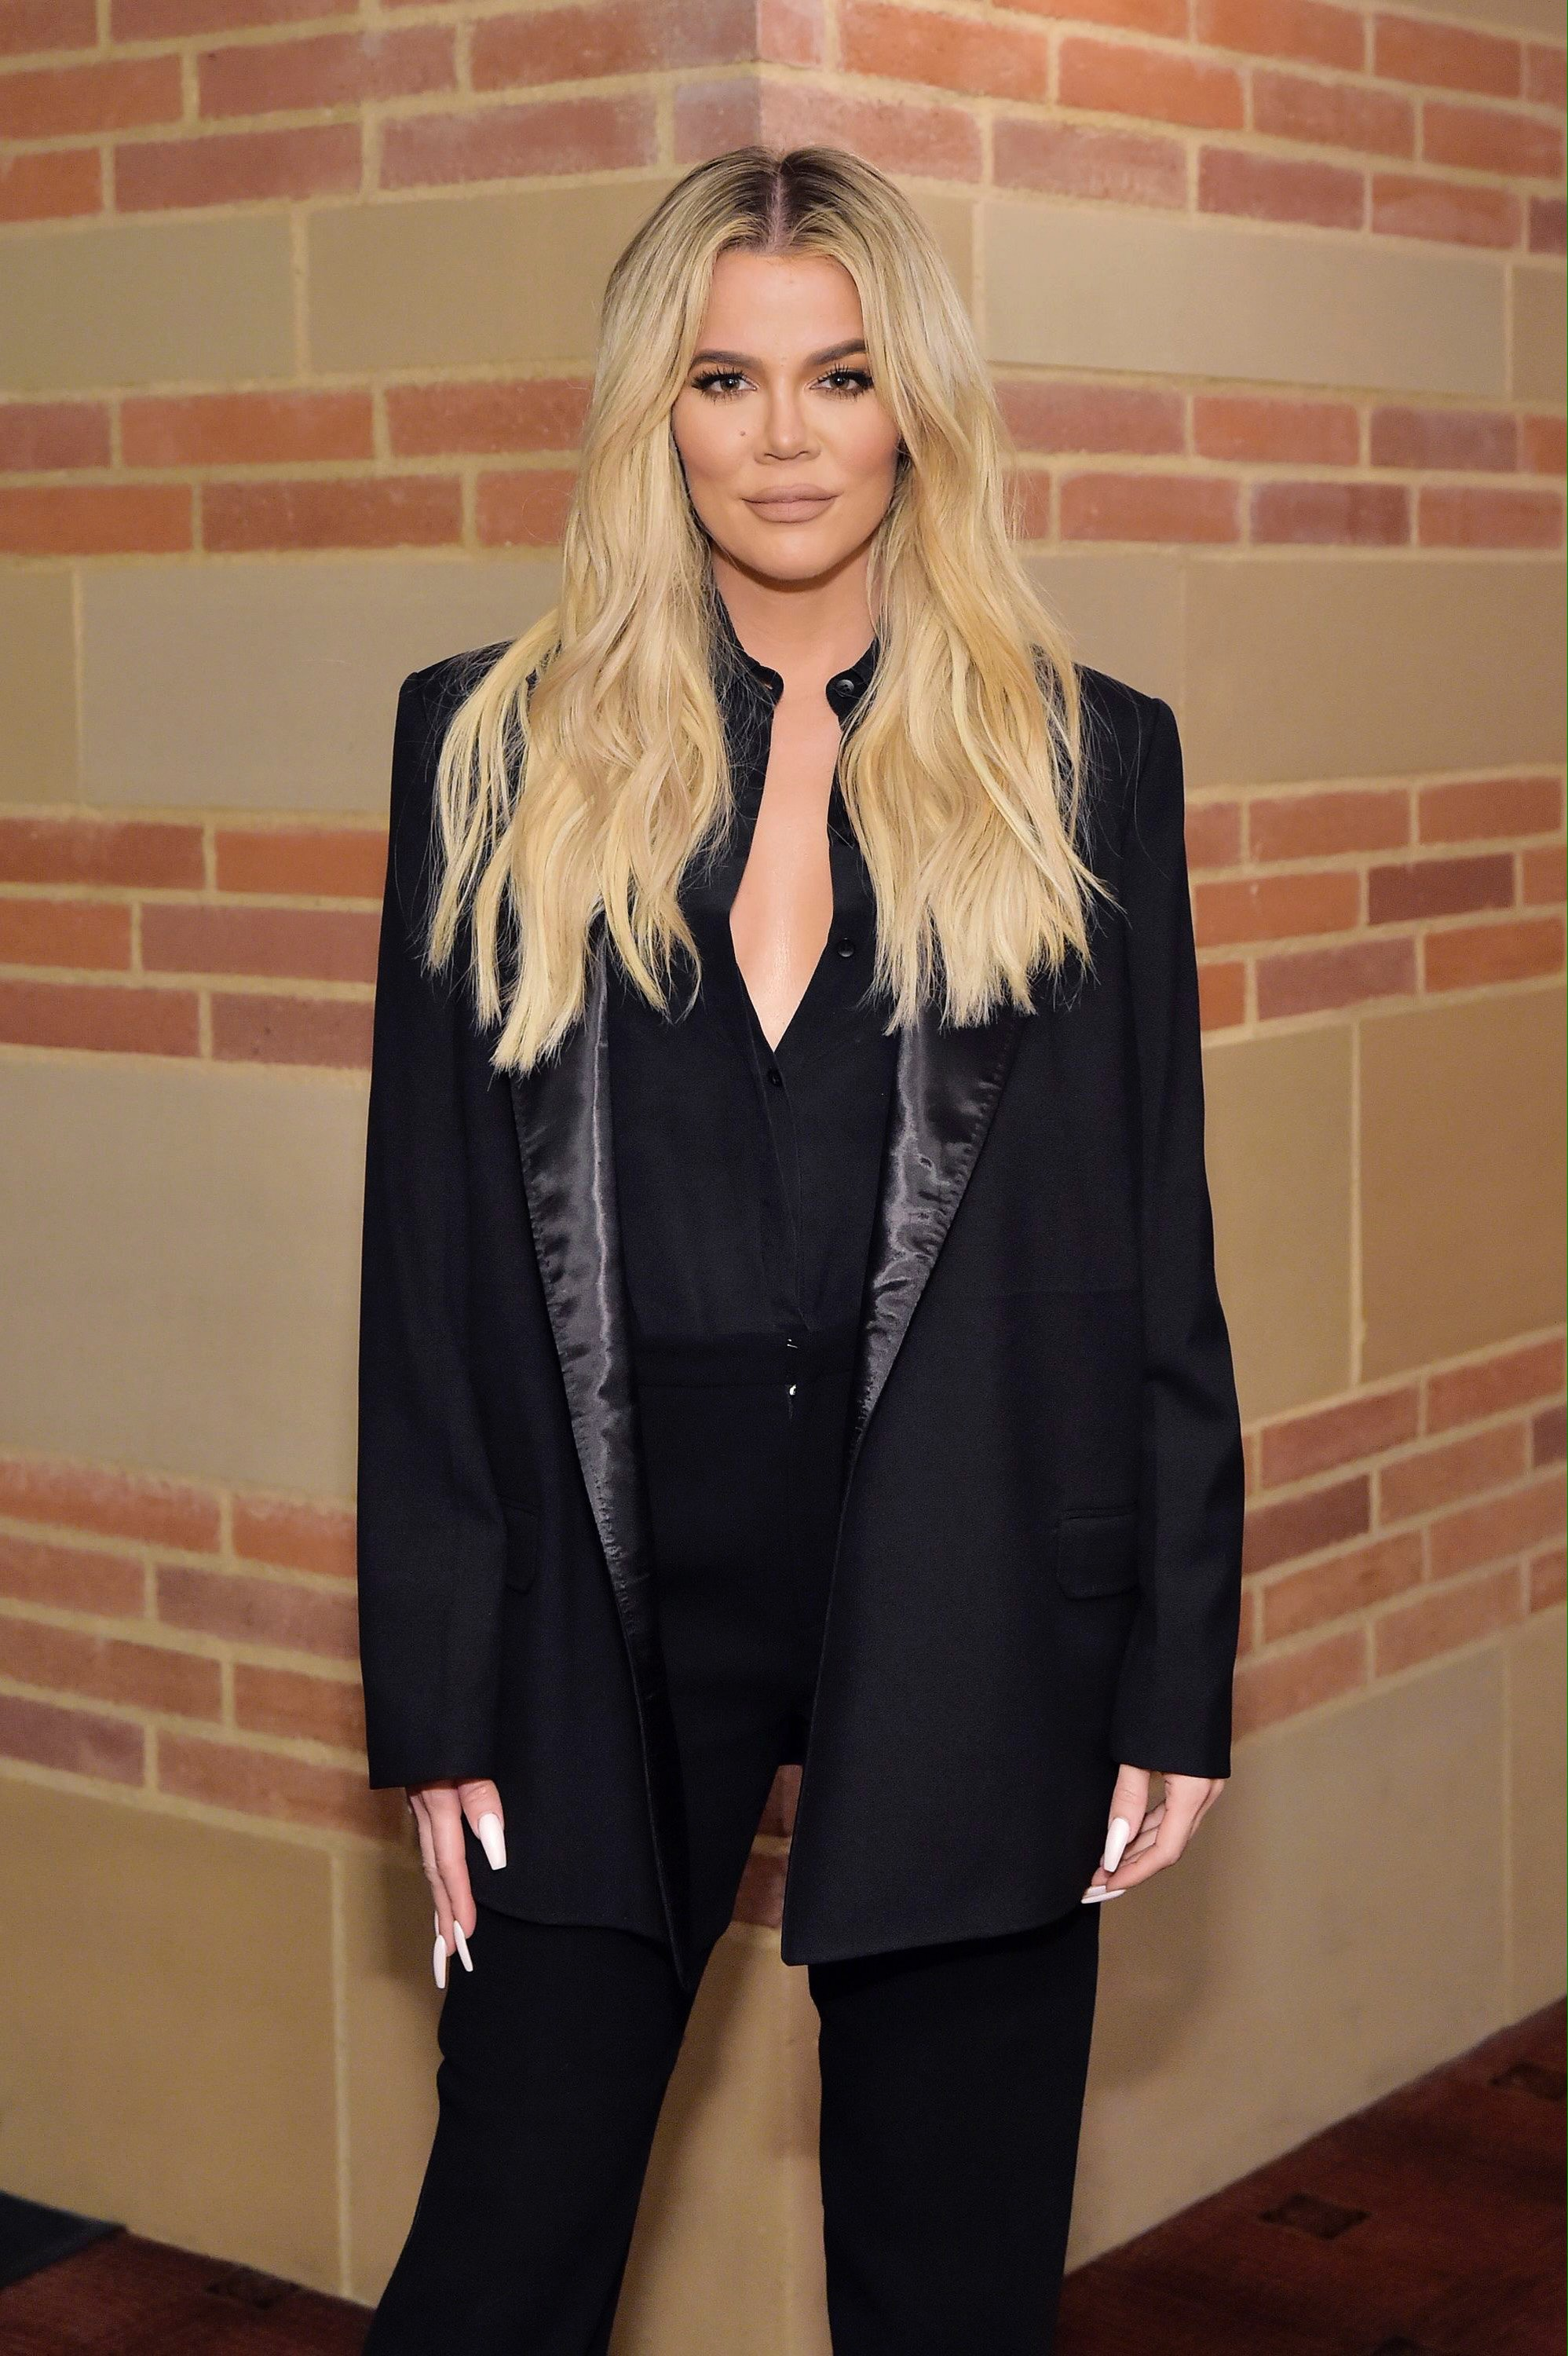 Khloe Kardashian attends The Promise Armenian Institute Event on November 19, 2019, in Los Angeles, California. | Source: Getty Images.